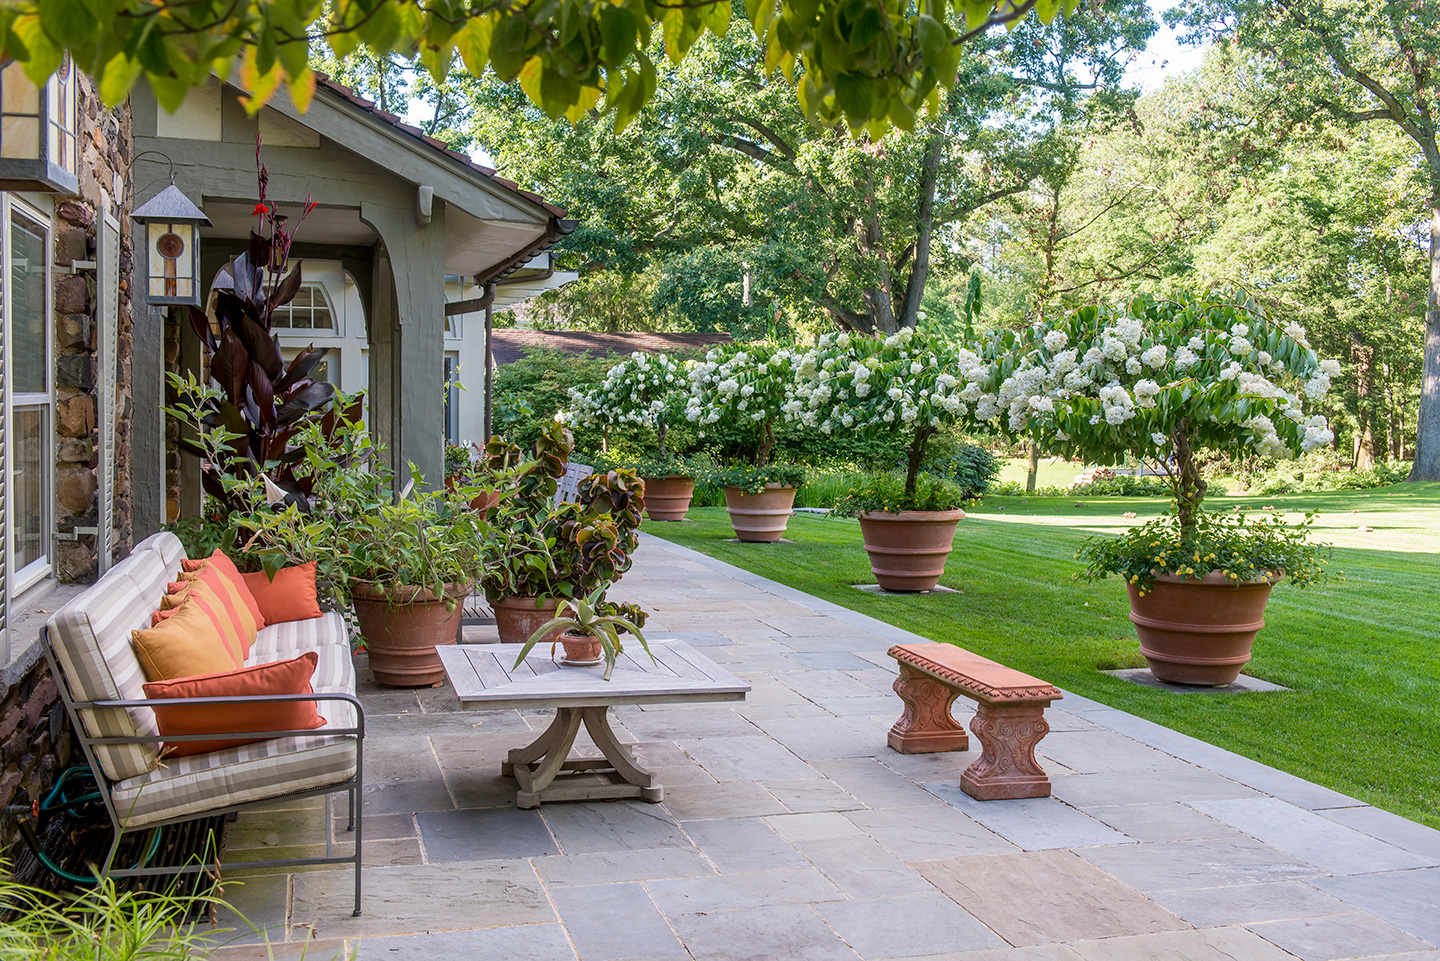 Cut stone terrace with large terracotta pots